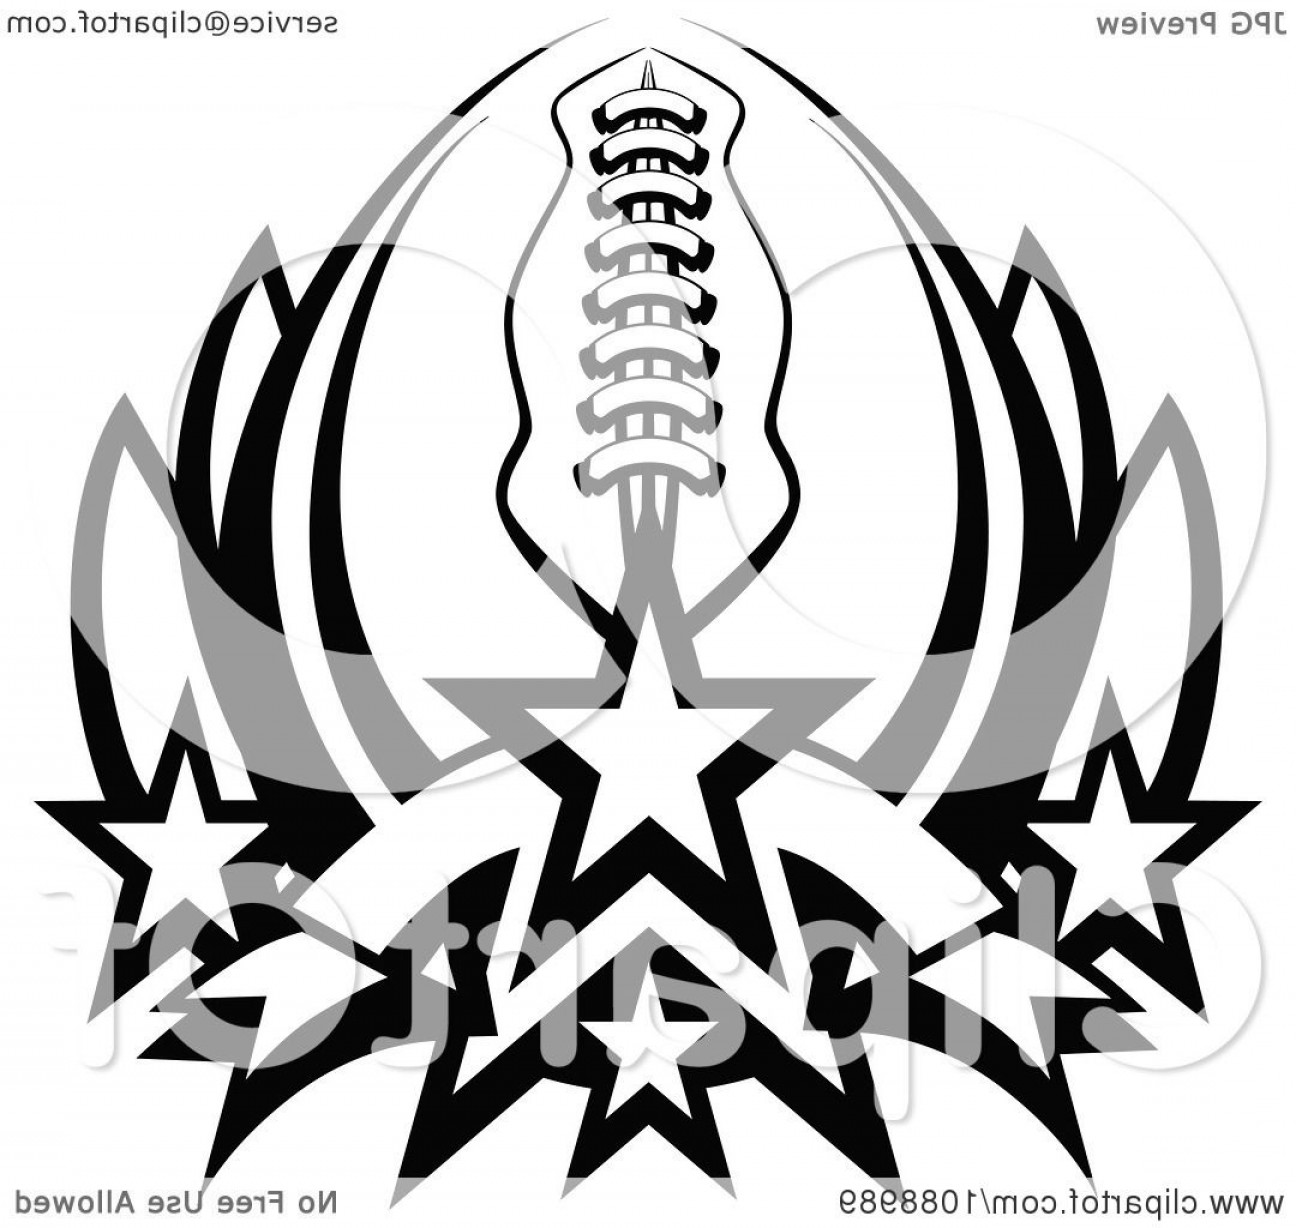 Black And White Vector American Football: Black And White American Football With Stars Forming A Lotus